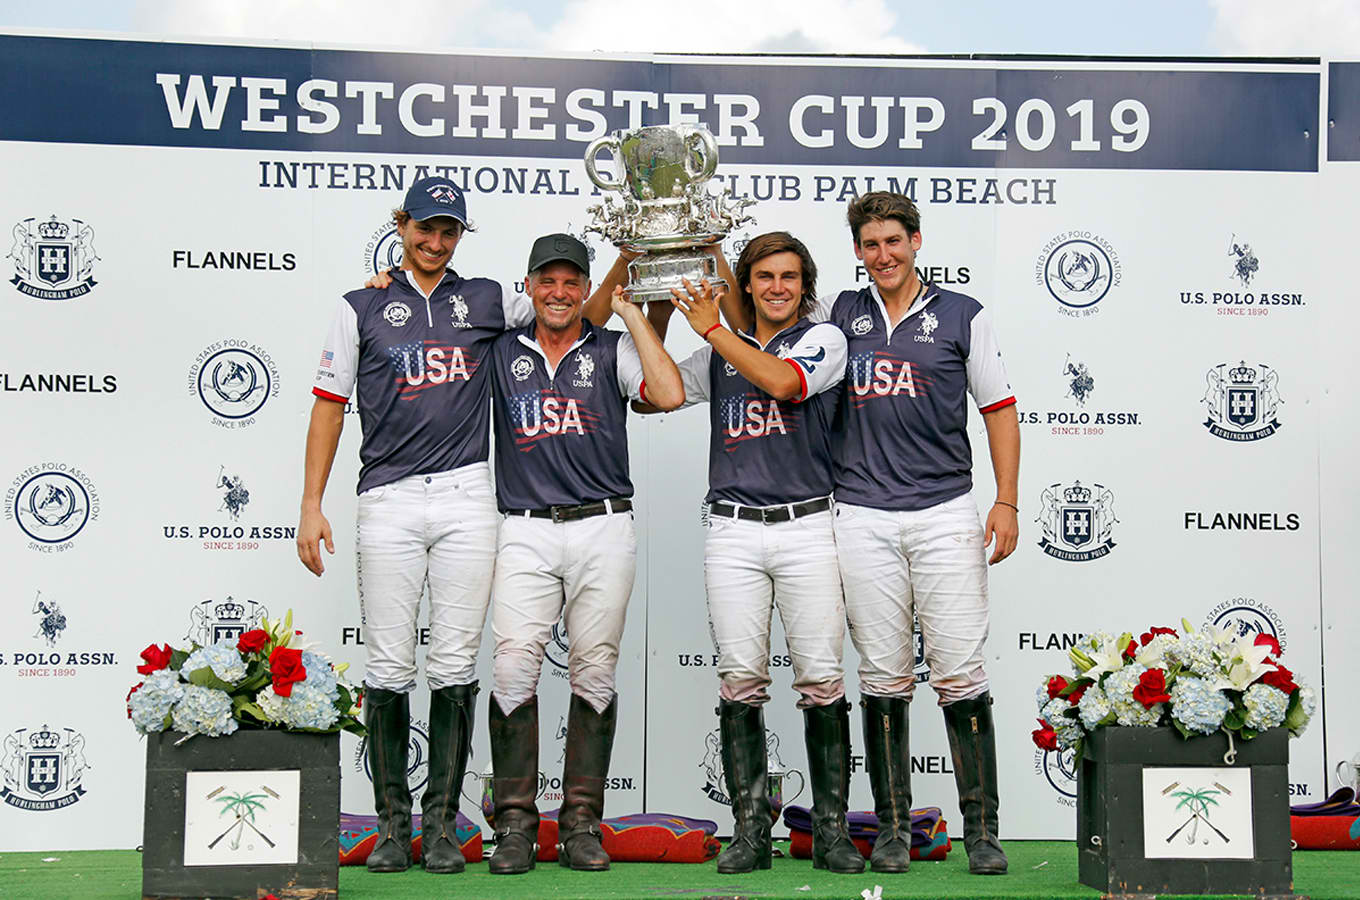 The Return of Westchester Cup to American Soil for the first time since 1992